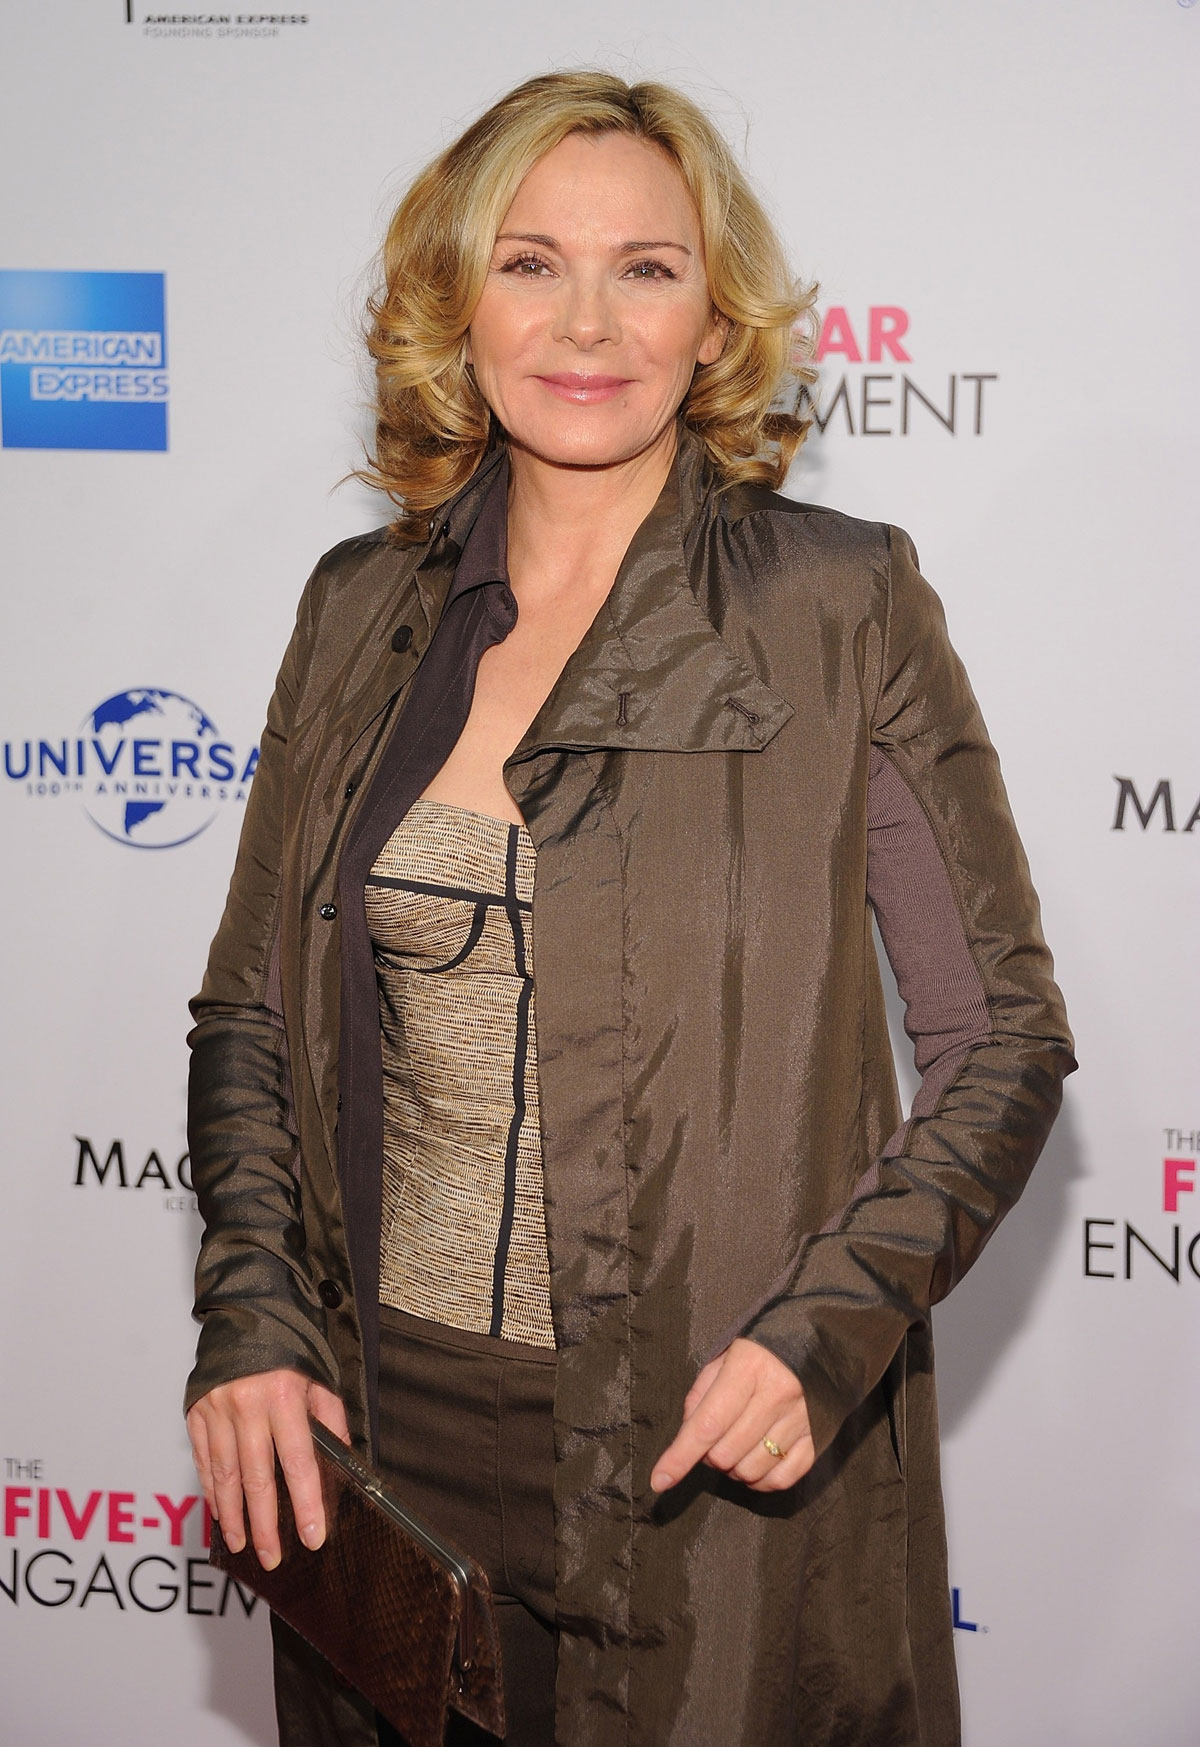 KIM CATTRALL at The Five Year Engagement Premiere in New York ... Kim Cattrall